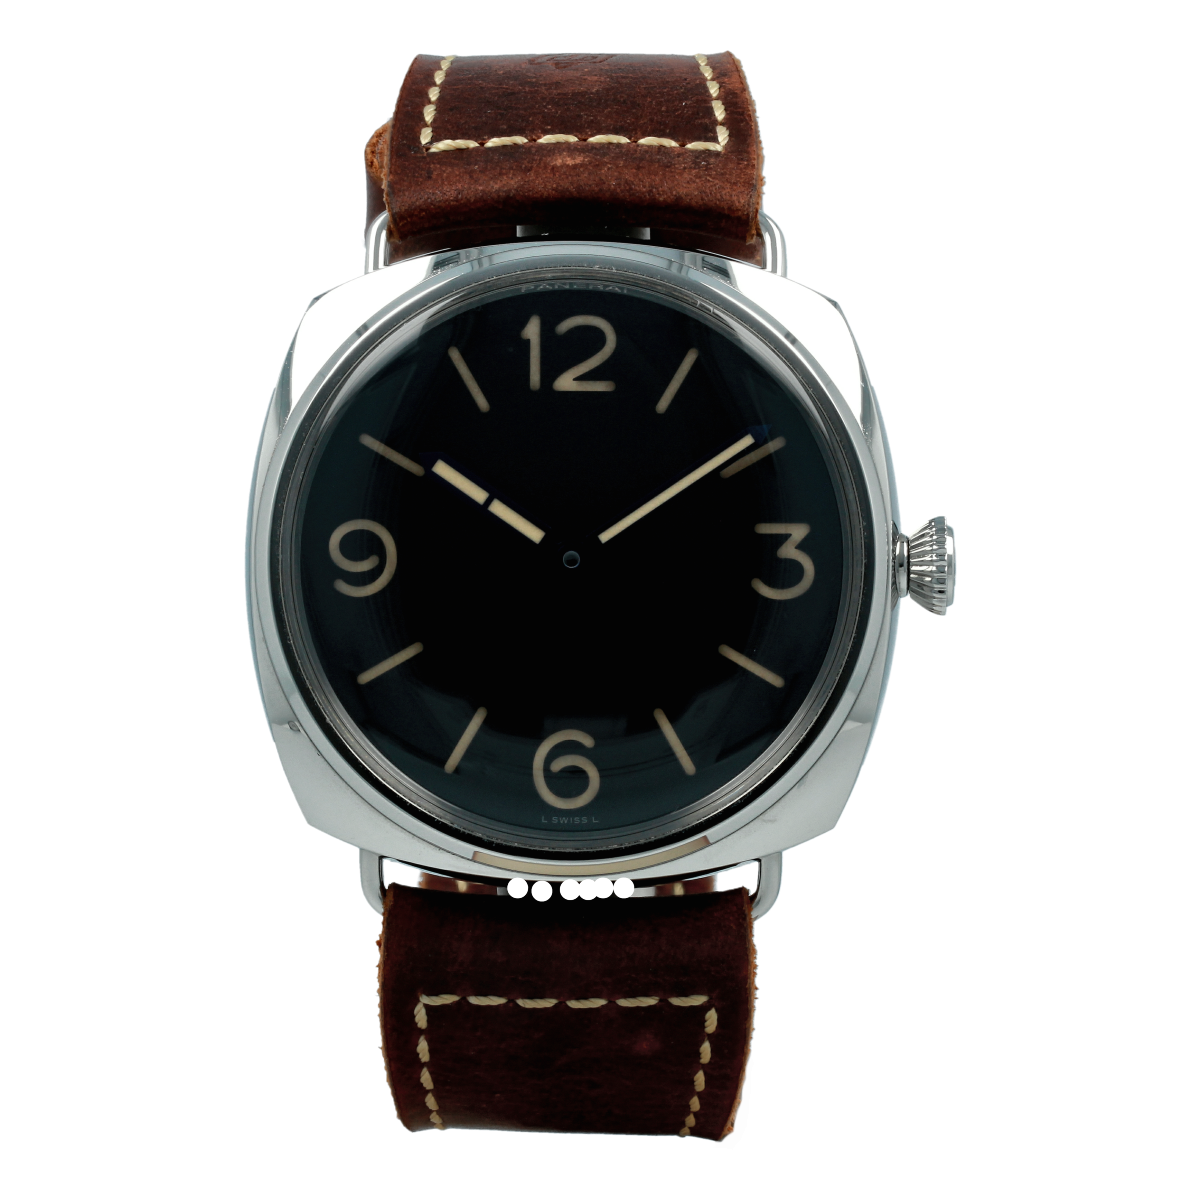 Panerai Radiomir 3-Days PAM721 47mm *Limited Edition* | Buy pre-owned Panerai watch